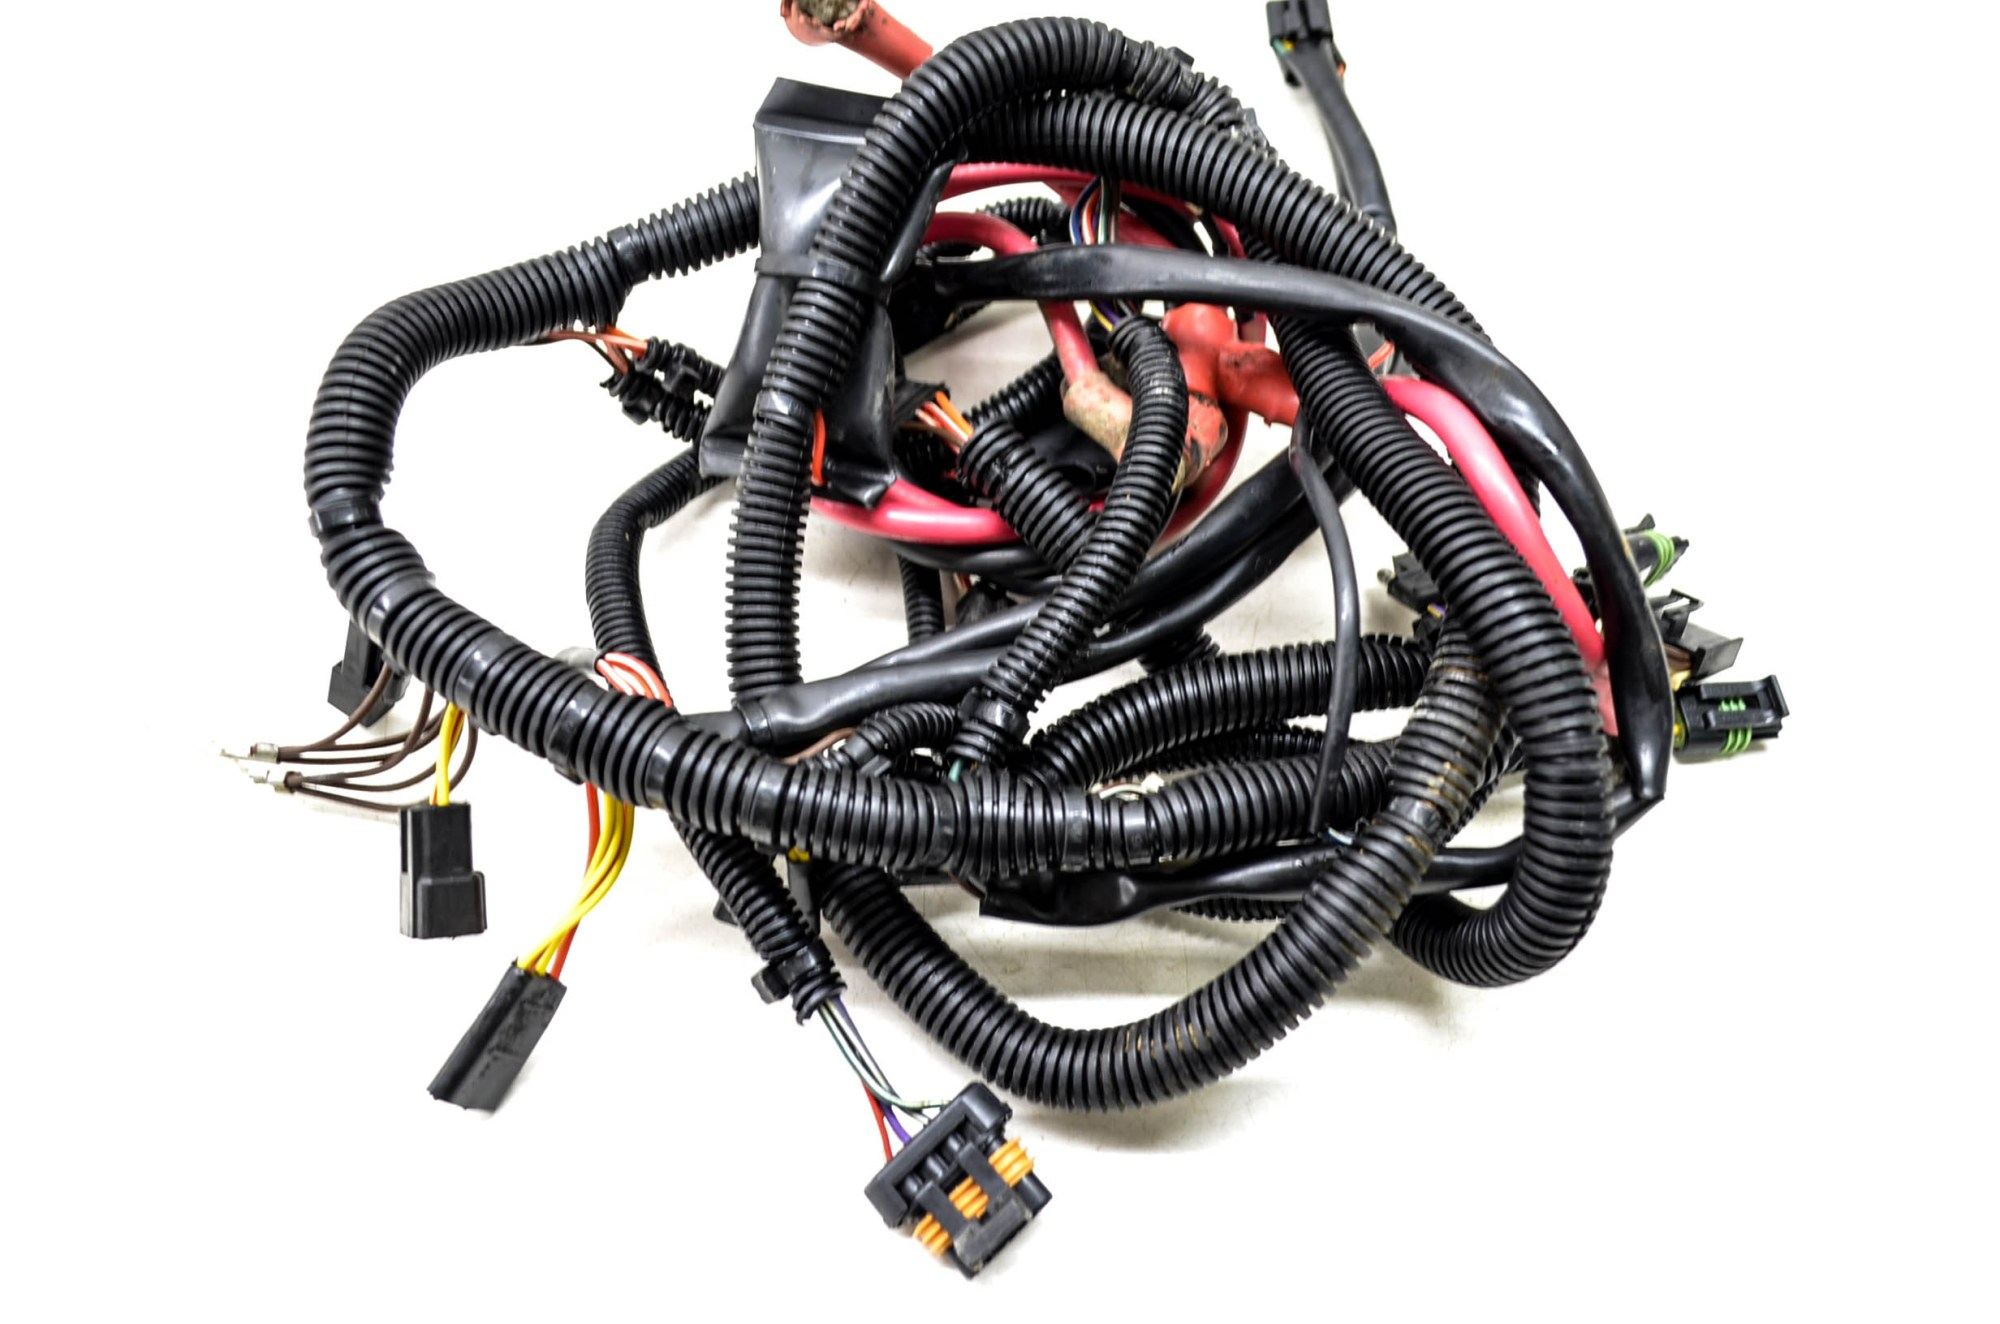 hight resolution of 02 polaris scrambler 400 4x4 wire harness electrical wiring